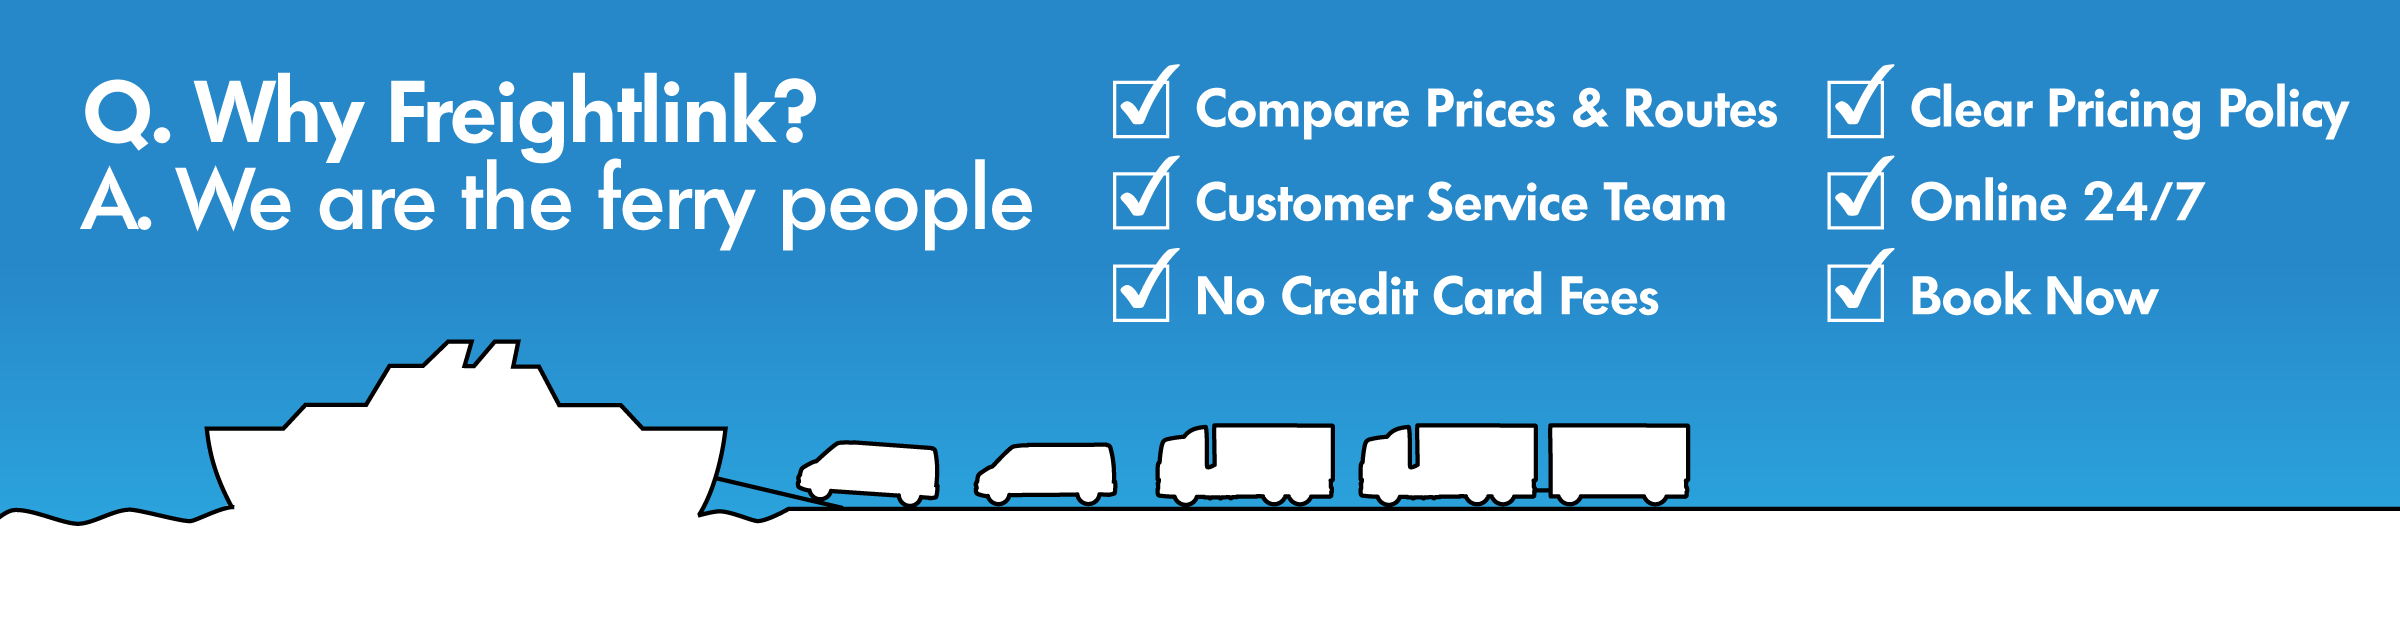 why freightlink? compare prices & routes, no credit card fees, clear pricing policy, online 24/7